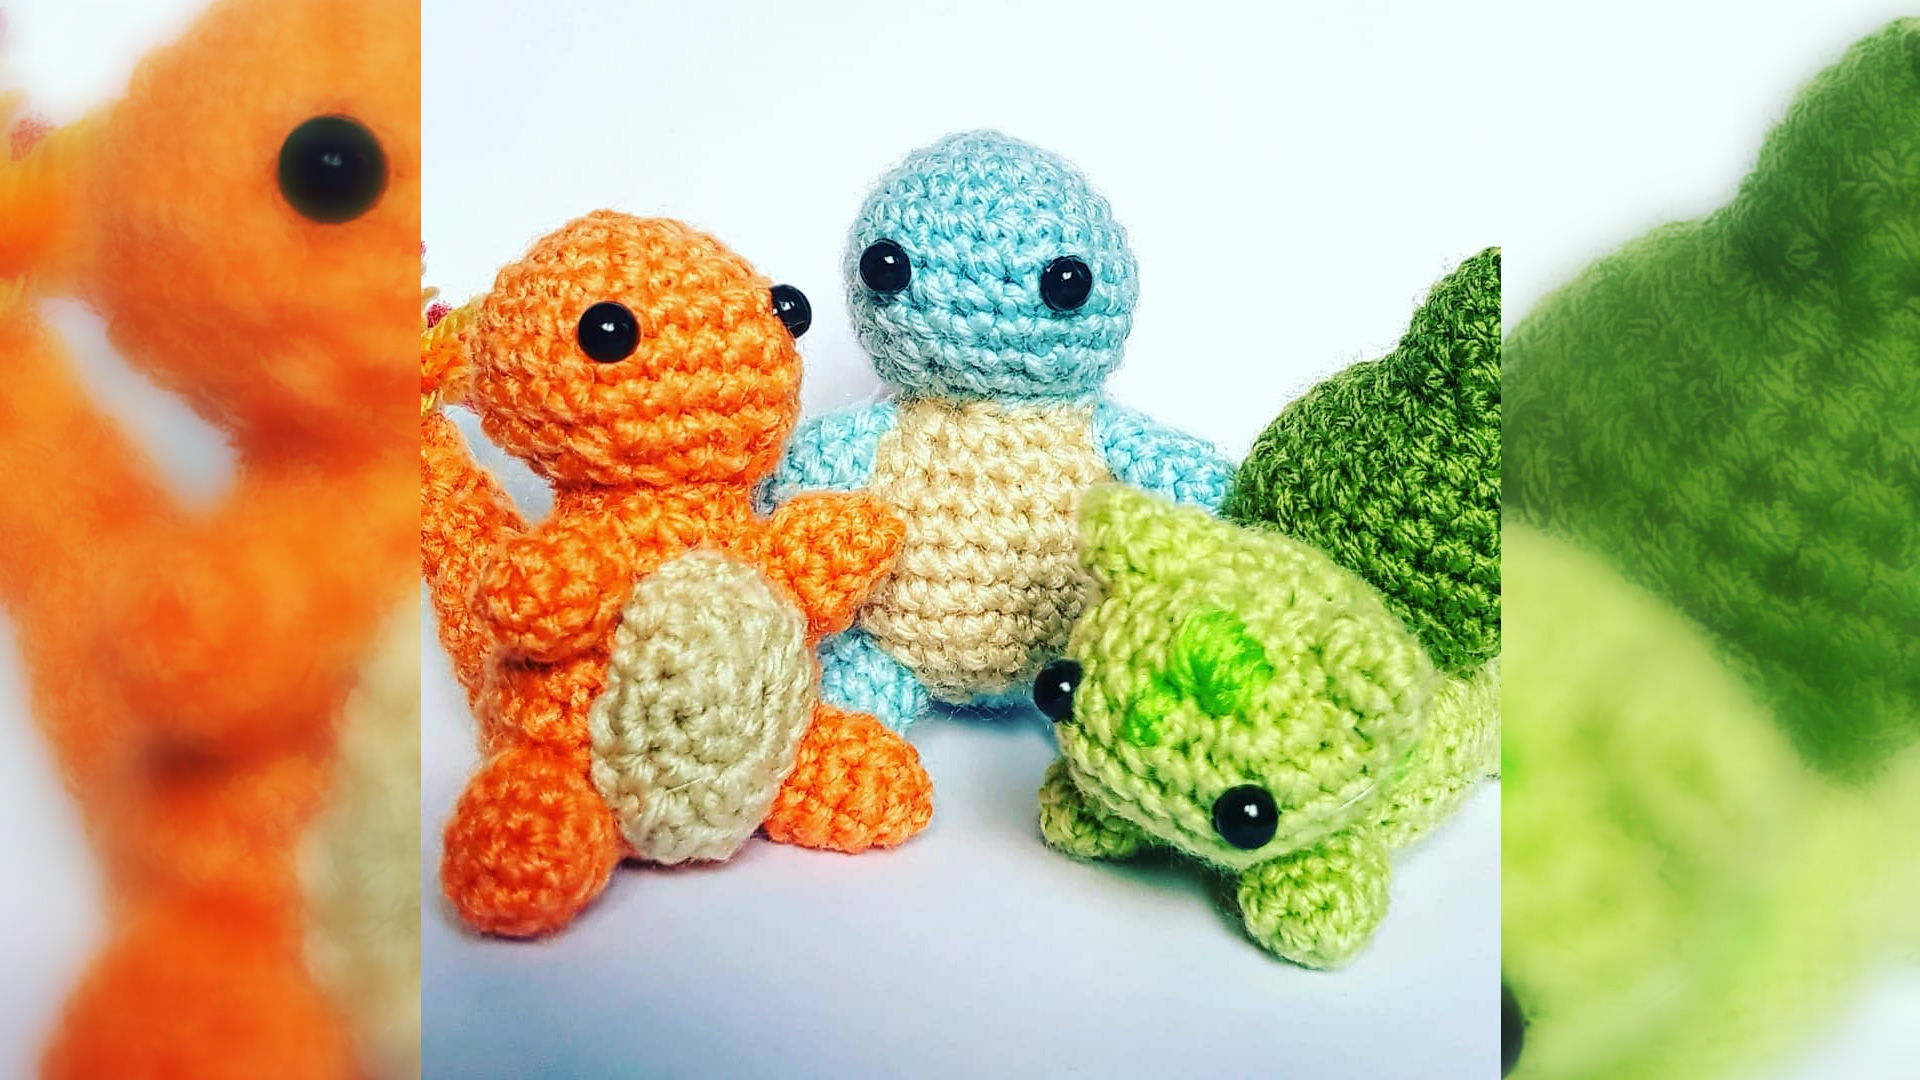 Adorable Crochet Wallpapers (50 Wallpapers - BsnSCB Gallery) | 1080x1920